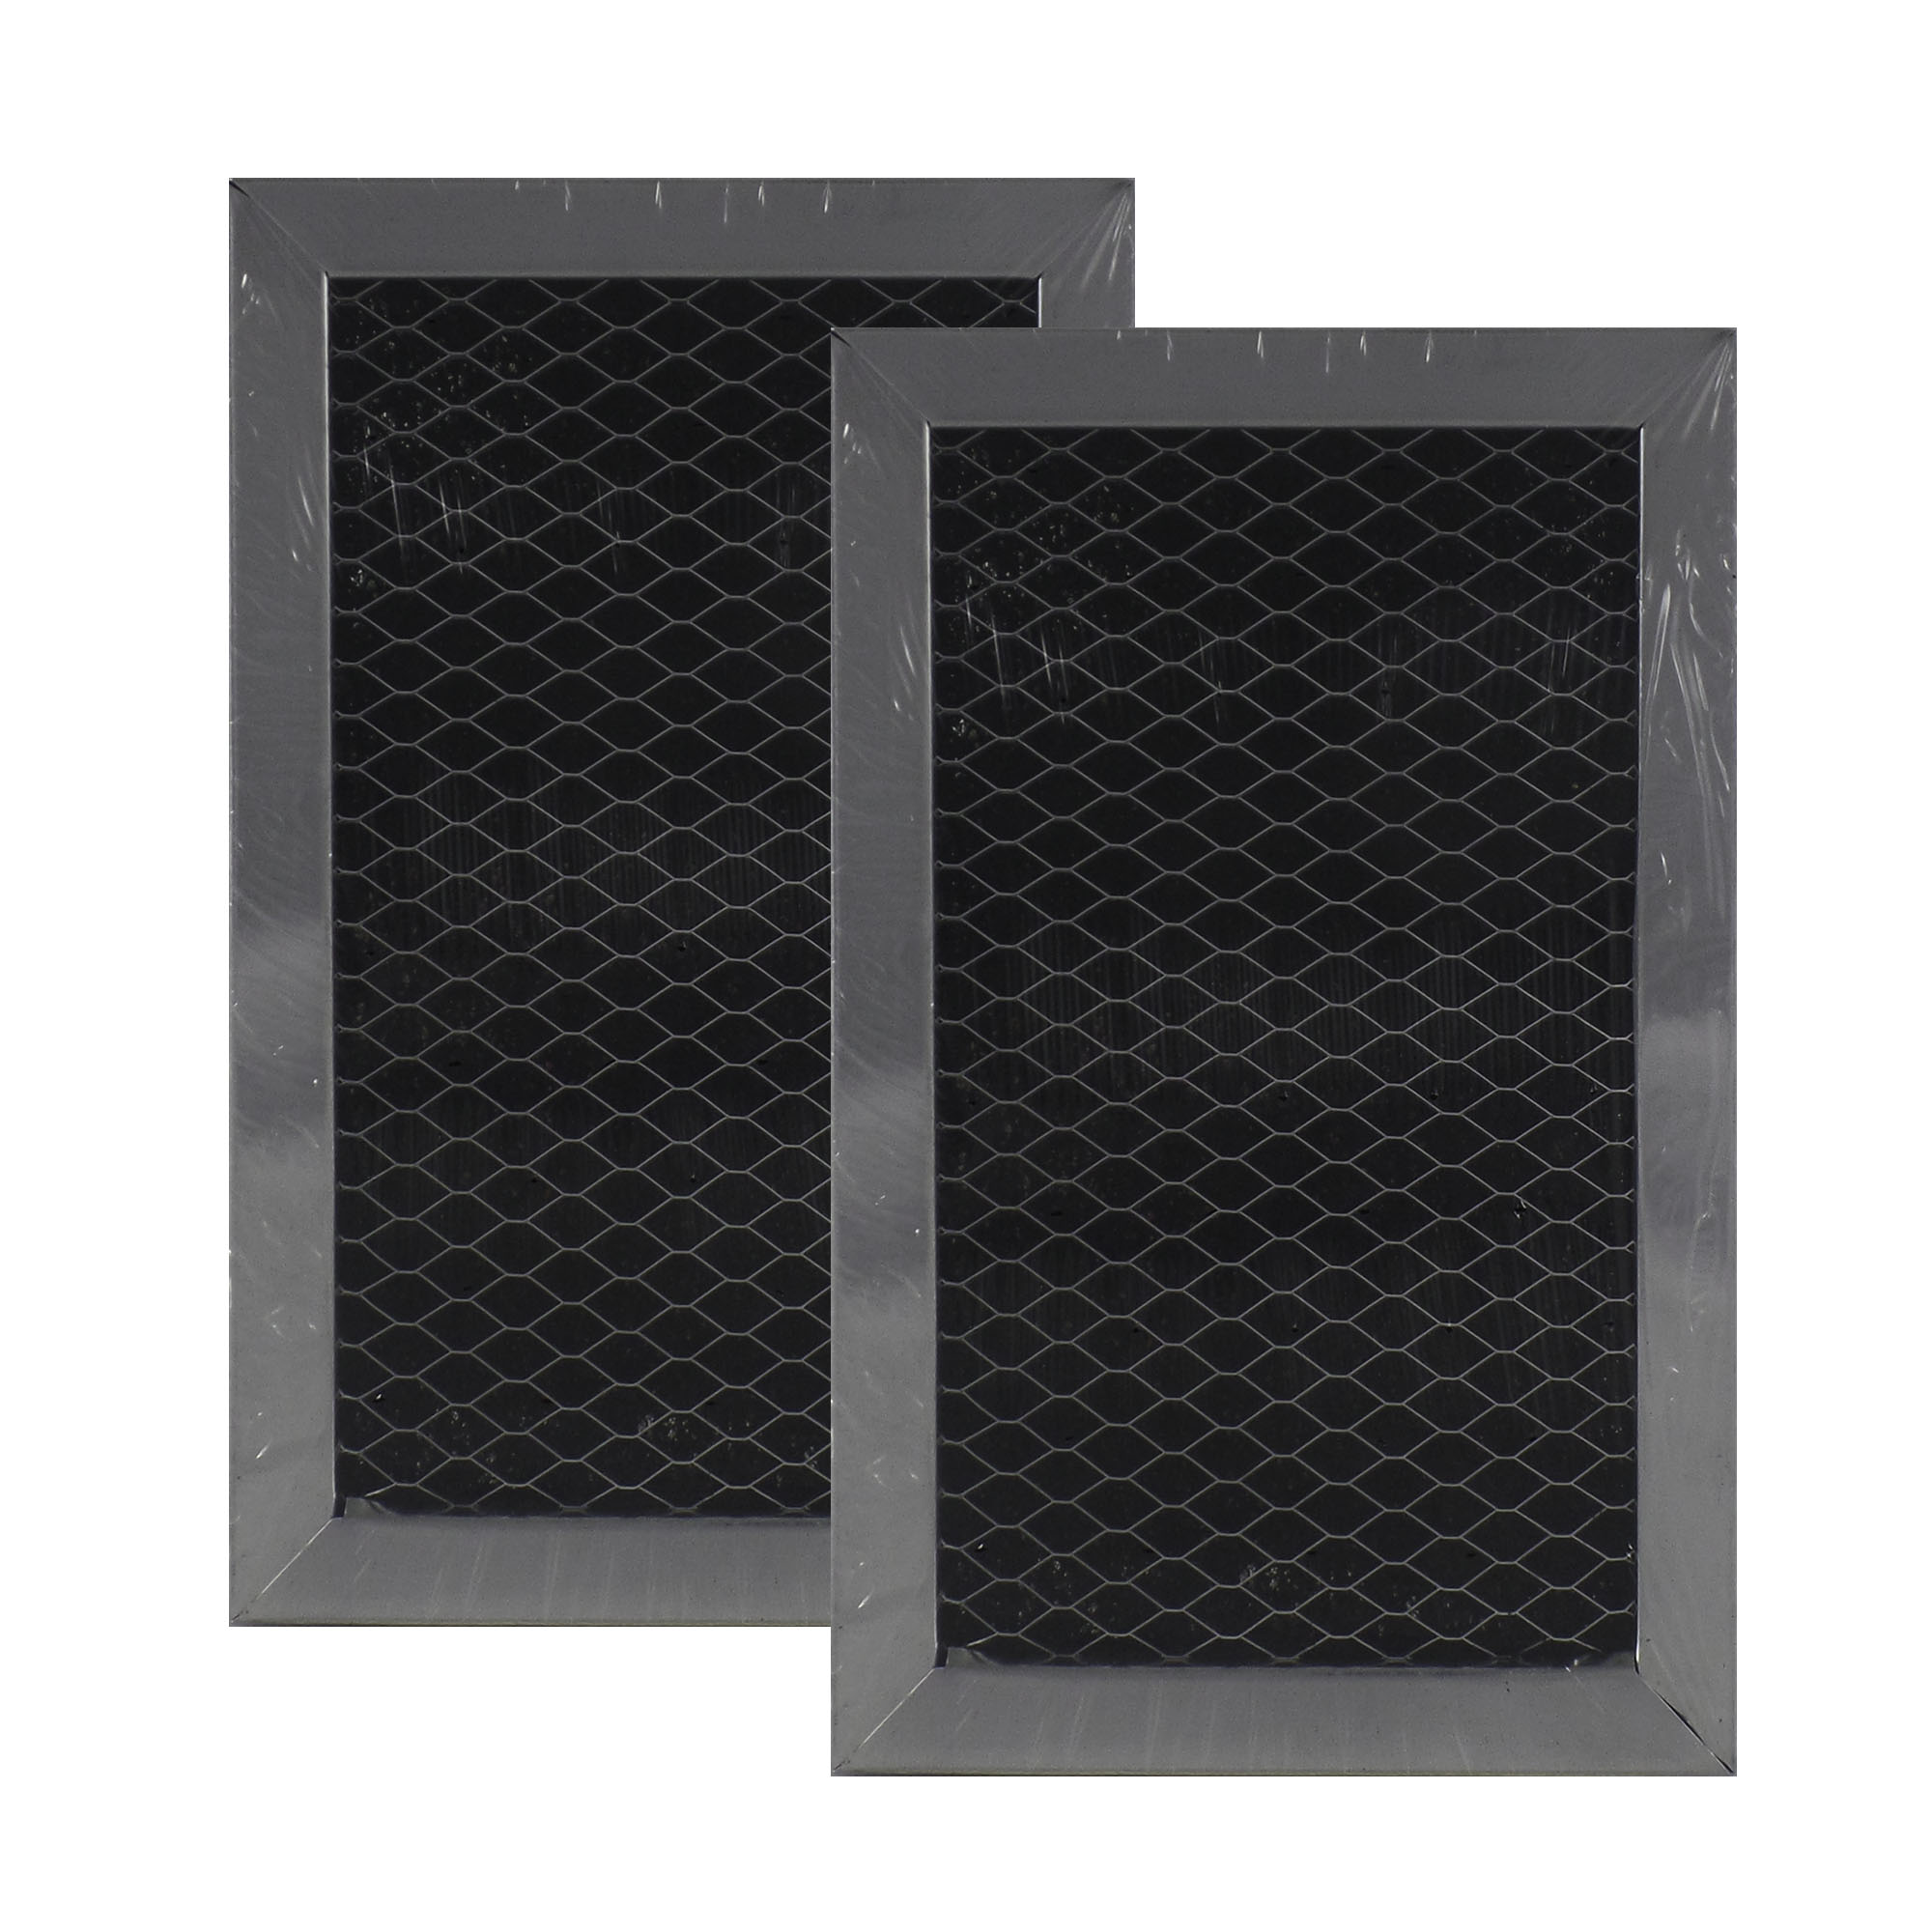 Air Filter Factory 2 PACK Compatible Replacement For Whirlpool AP3115349 Microwave Hood Charcoal Filter Set